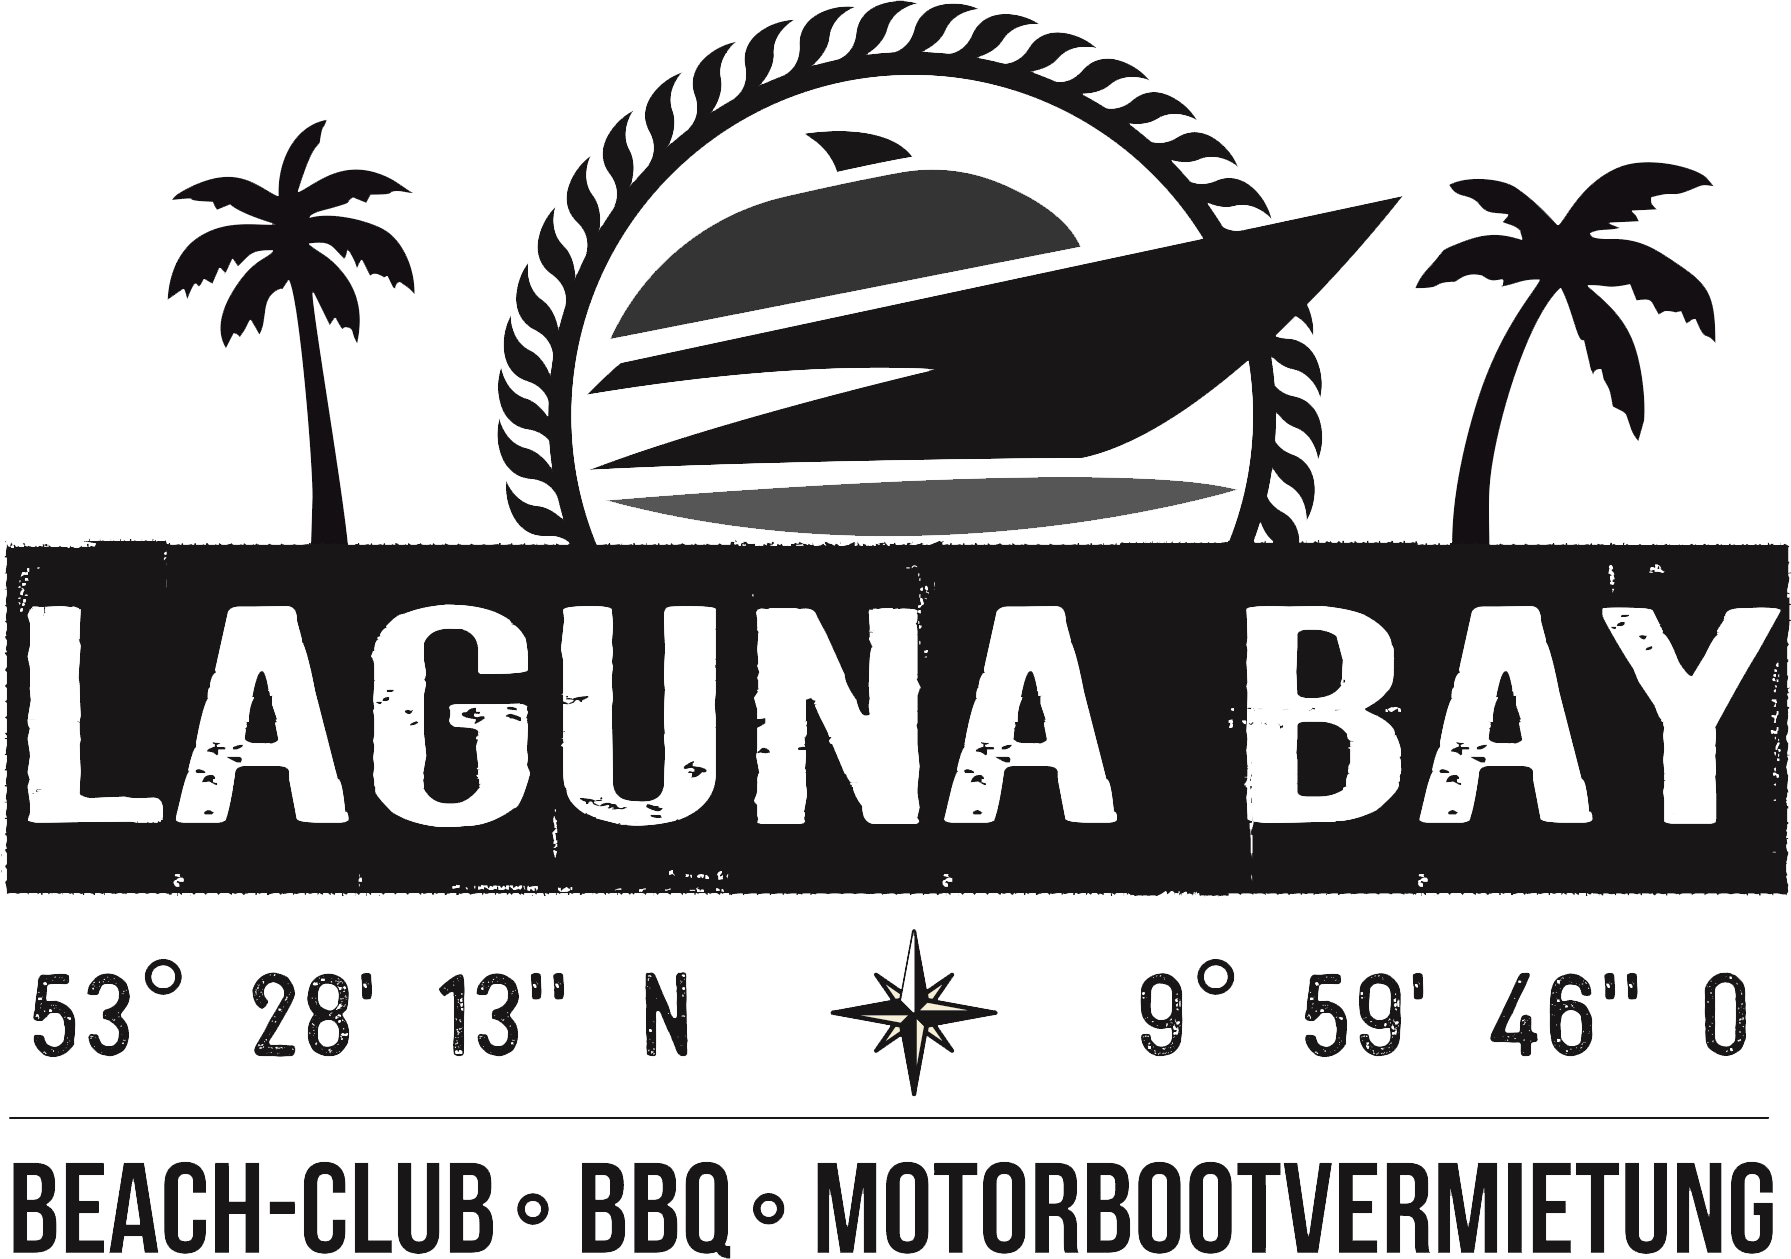 Laguna Bay Beachclub Hamburg-Harburg